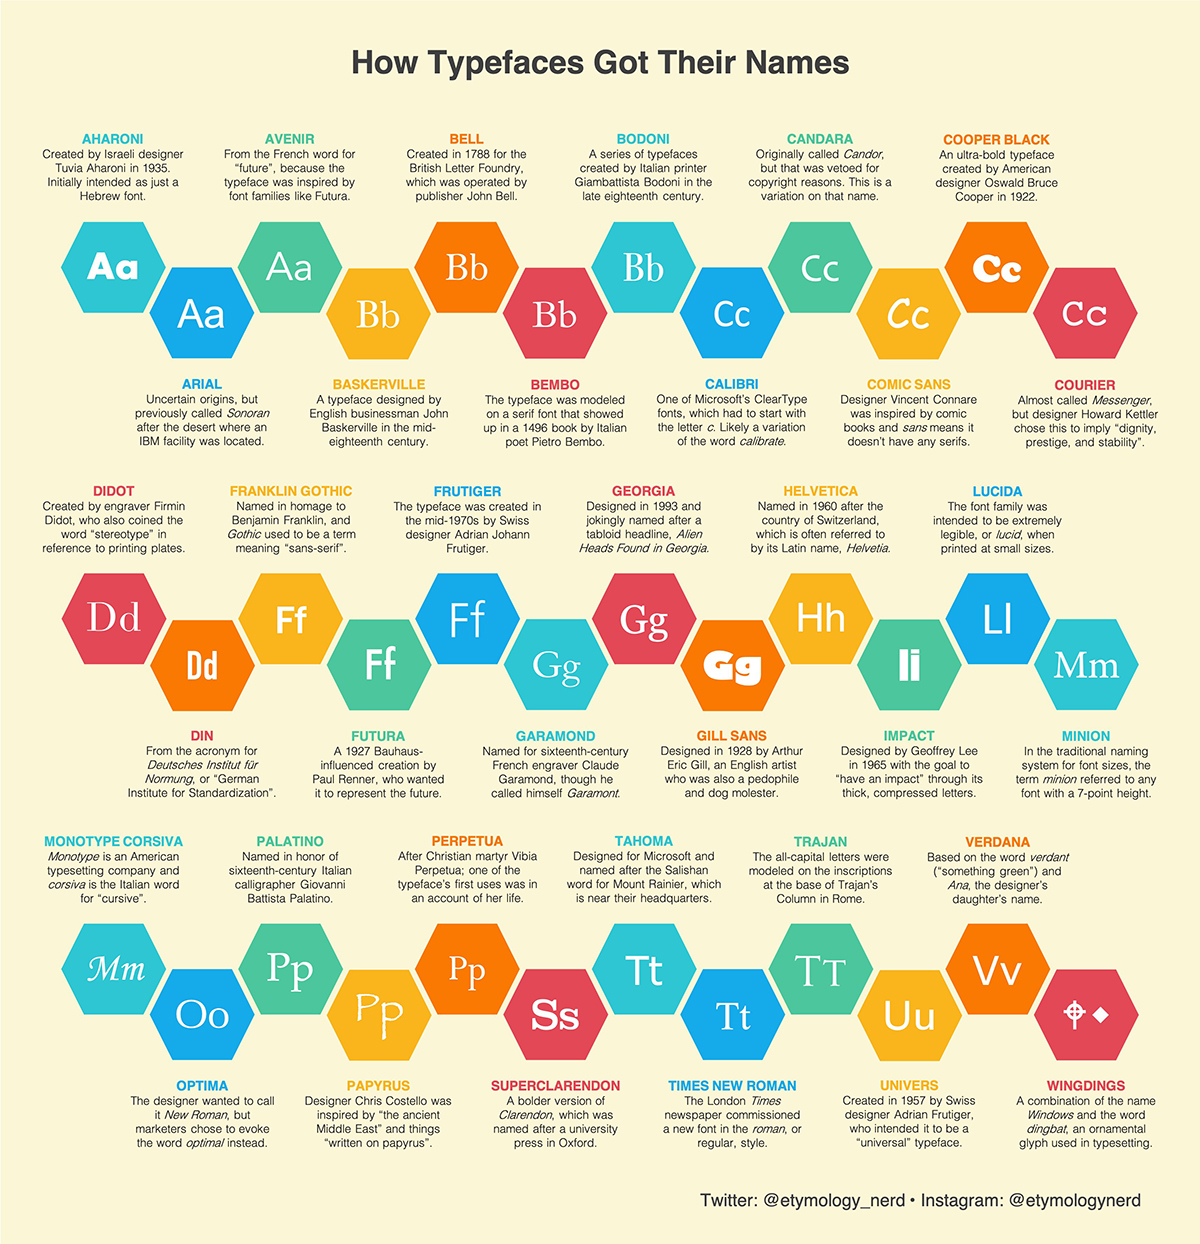 An infographic example showcasing how typefaces got their names.